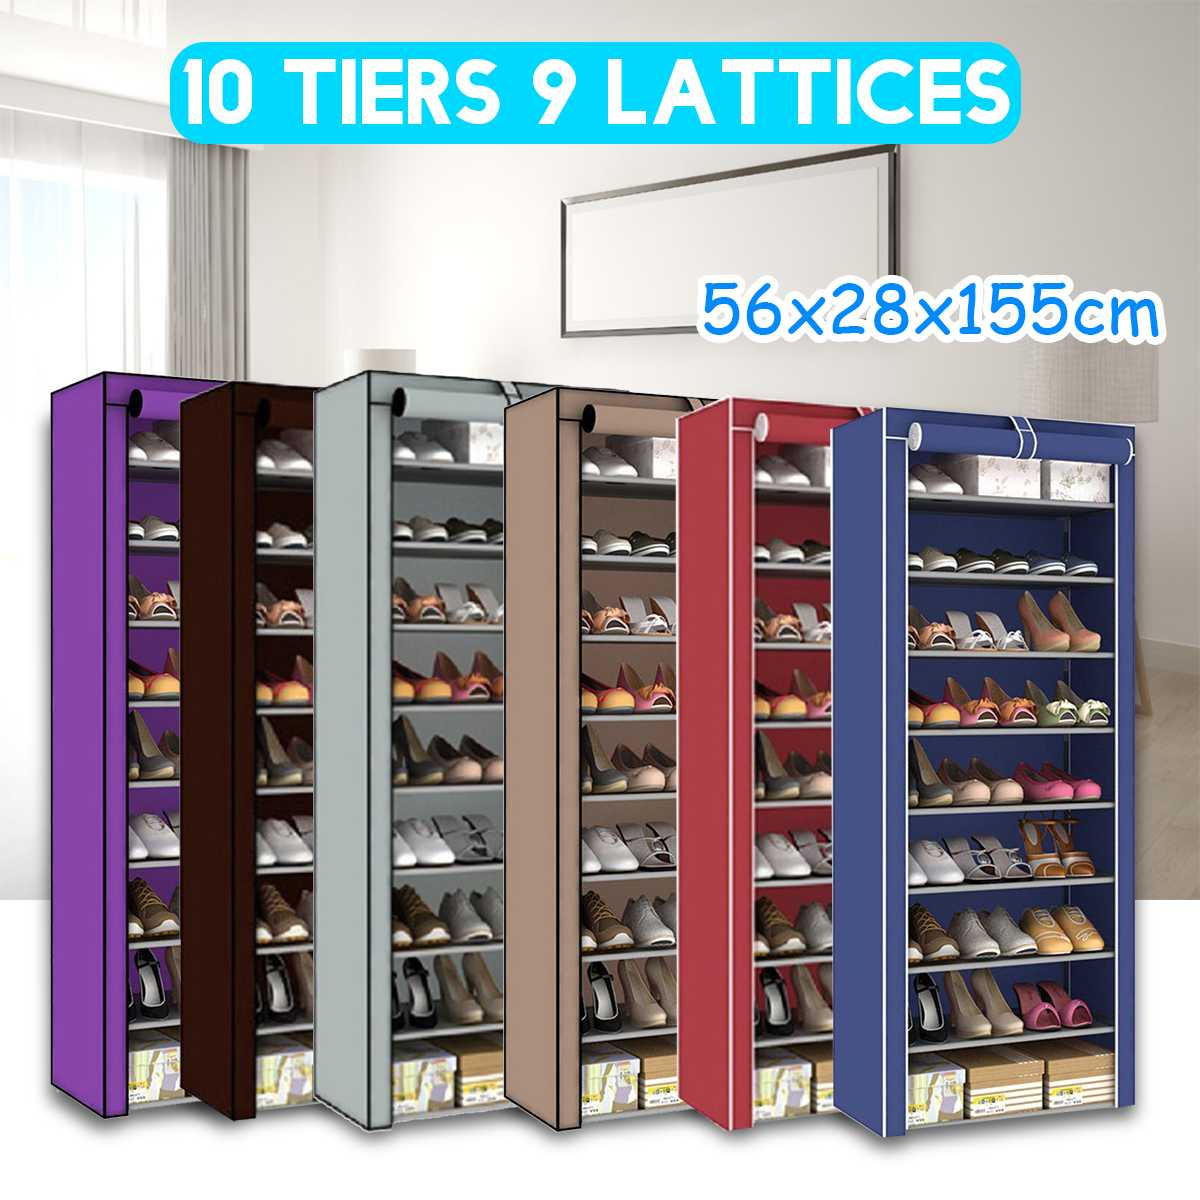 Shoe Rack 9 Tier Shoe Shelves Dust-proof Shoe Cabinet Non-woven Cloth Shoe Storage Stand Holder DIY Assembly Shoe Organizer Rack